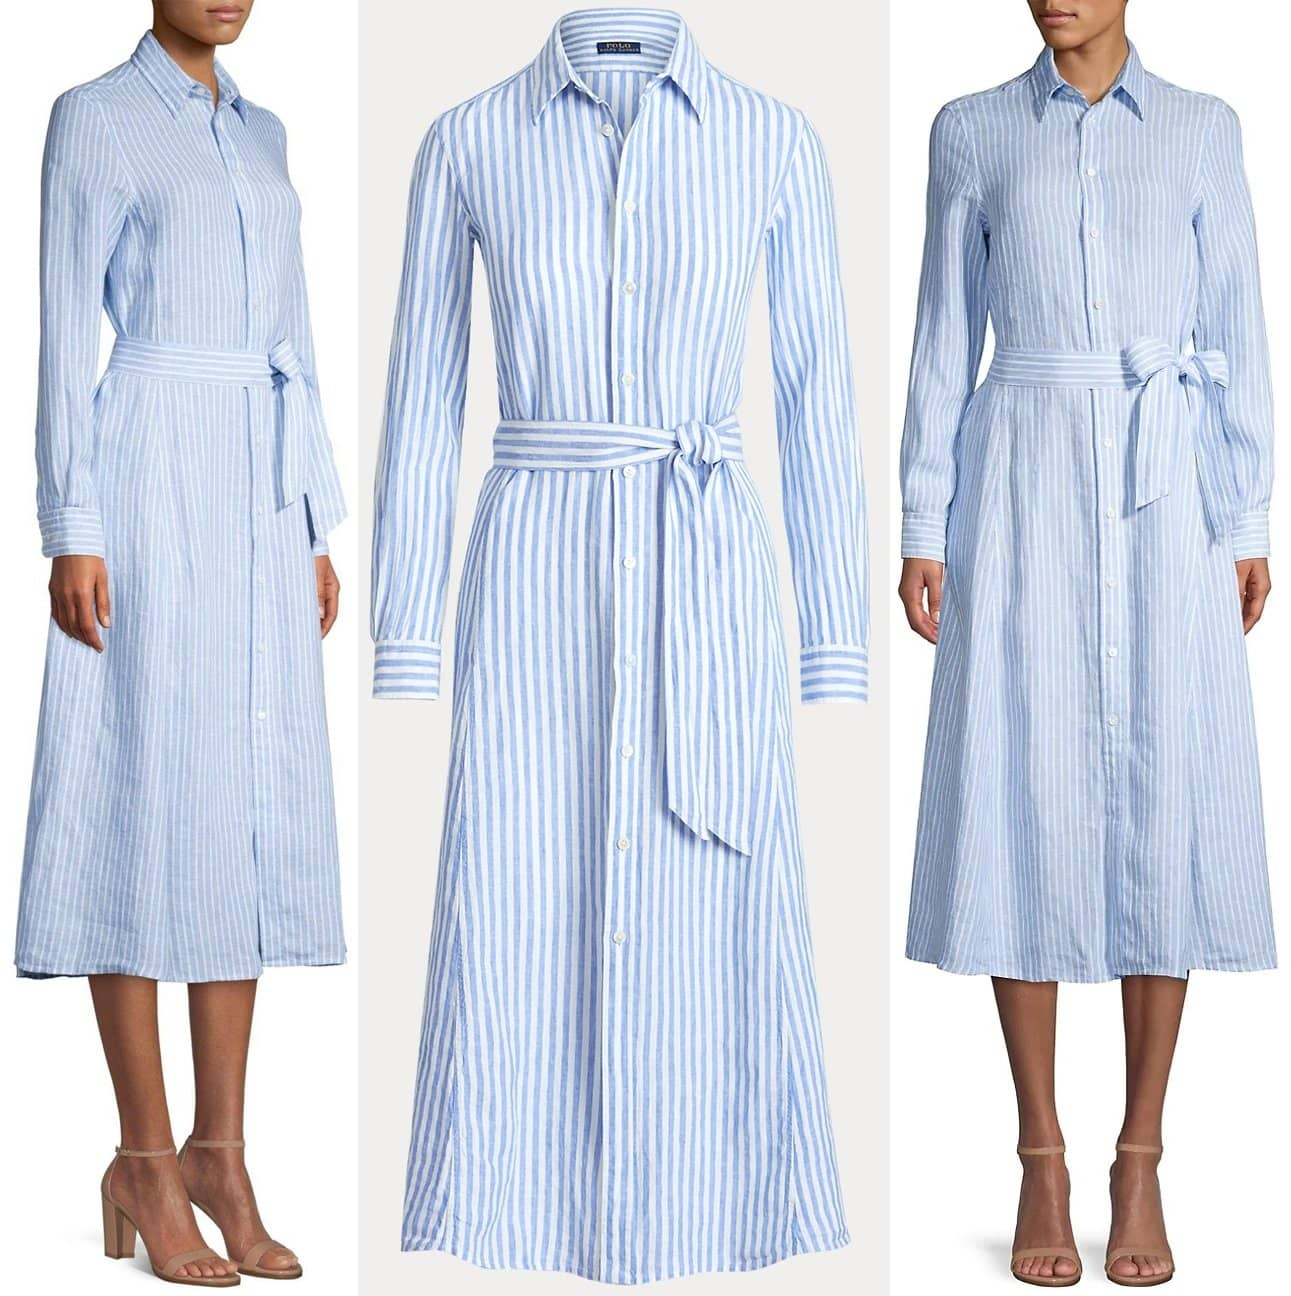 Lightweight linen brings ease of movement to this striped shirtdress, which features a fluid A-line skirt and is accented with a self-belt at the waist